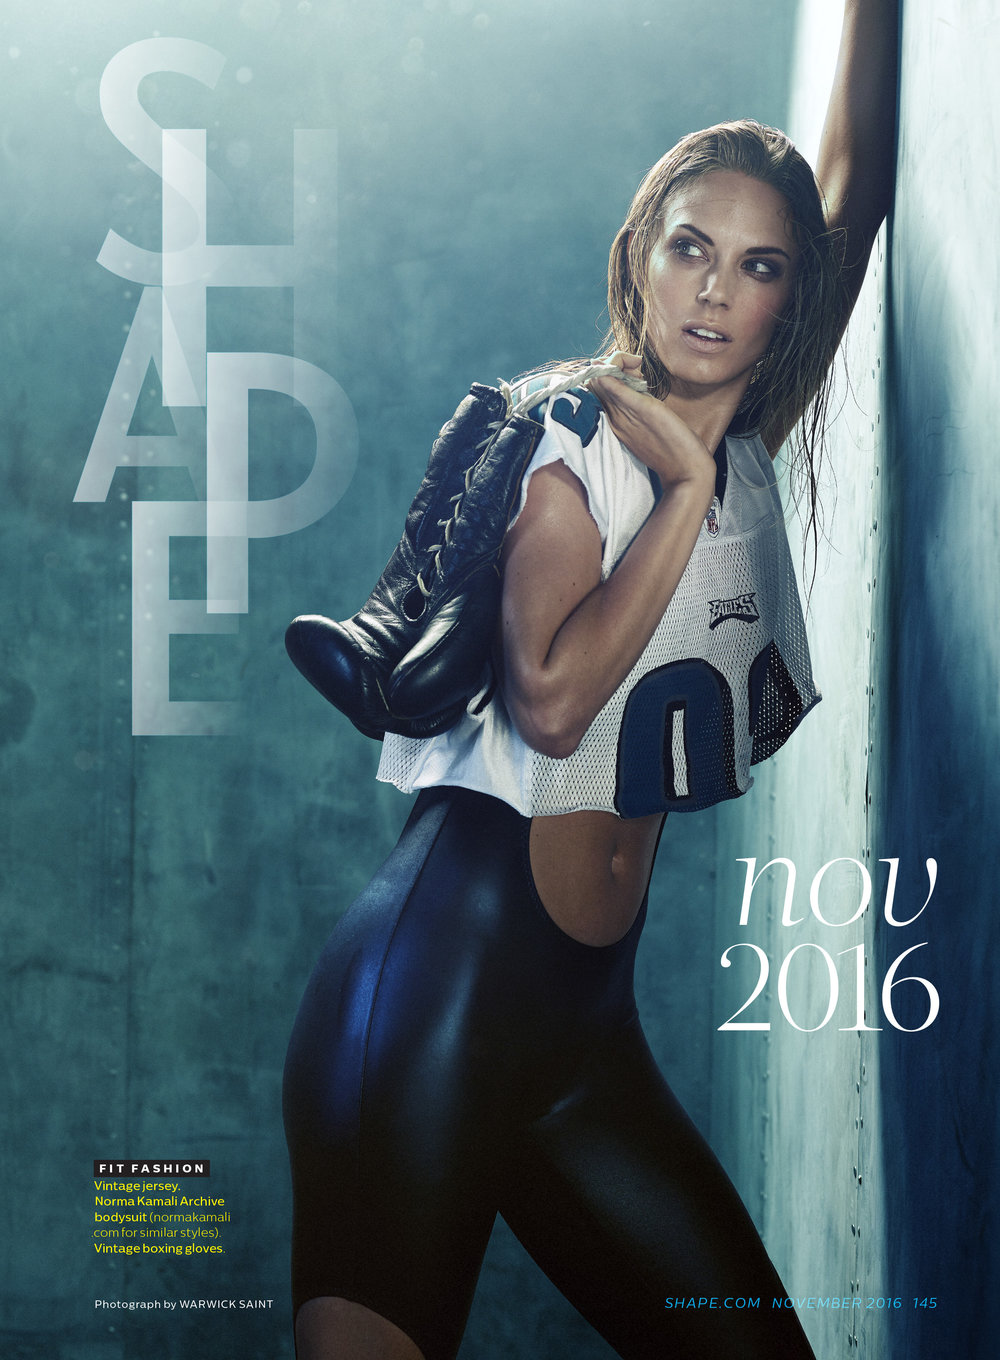 Get A Fierce Physique, November 2016